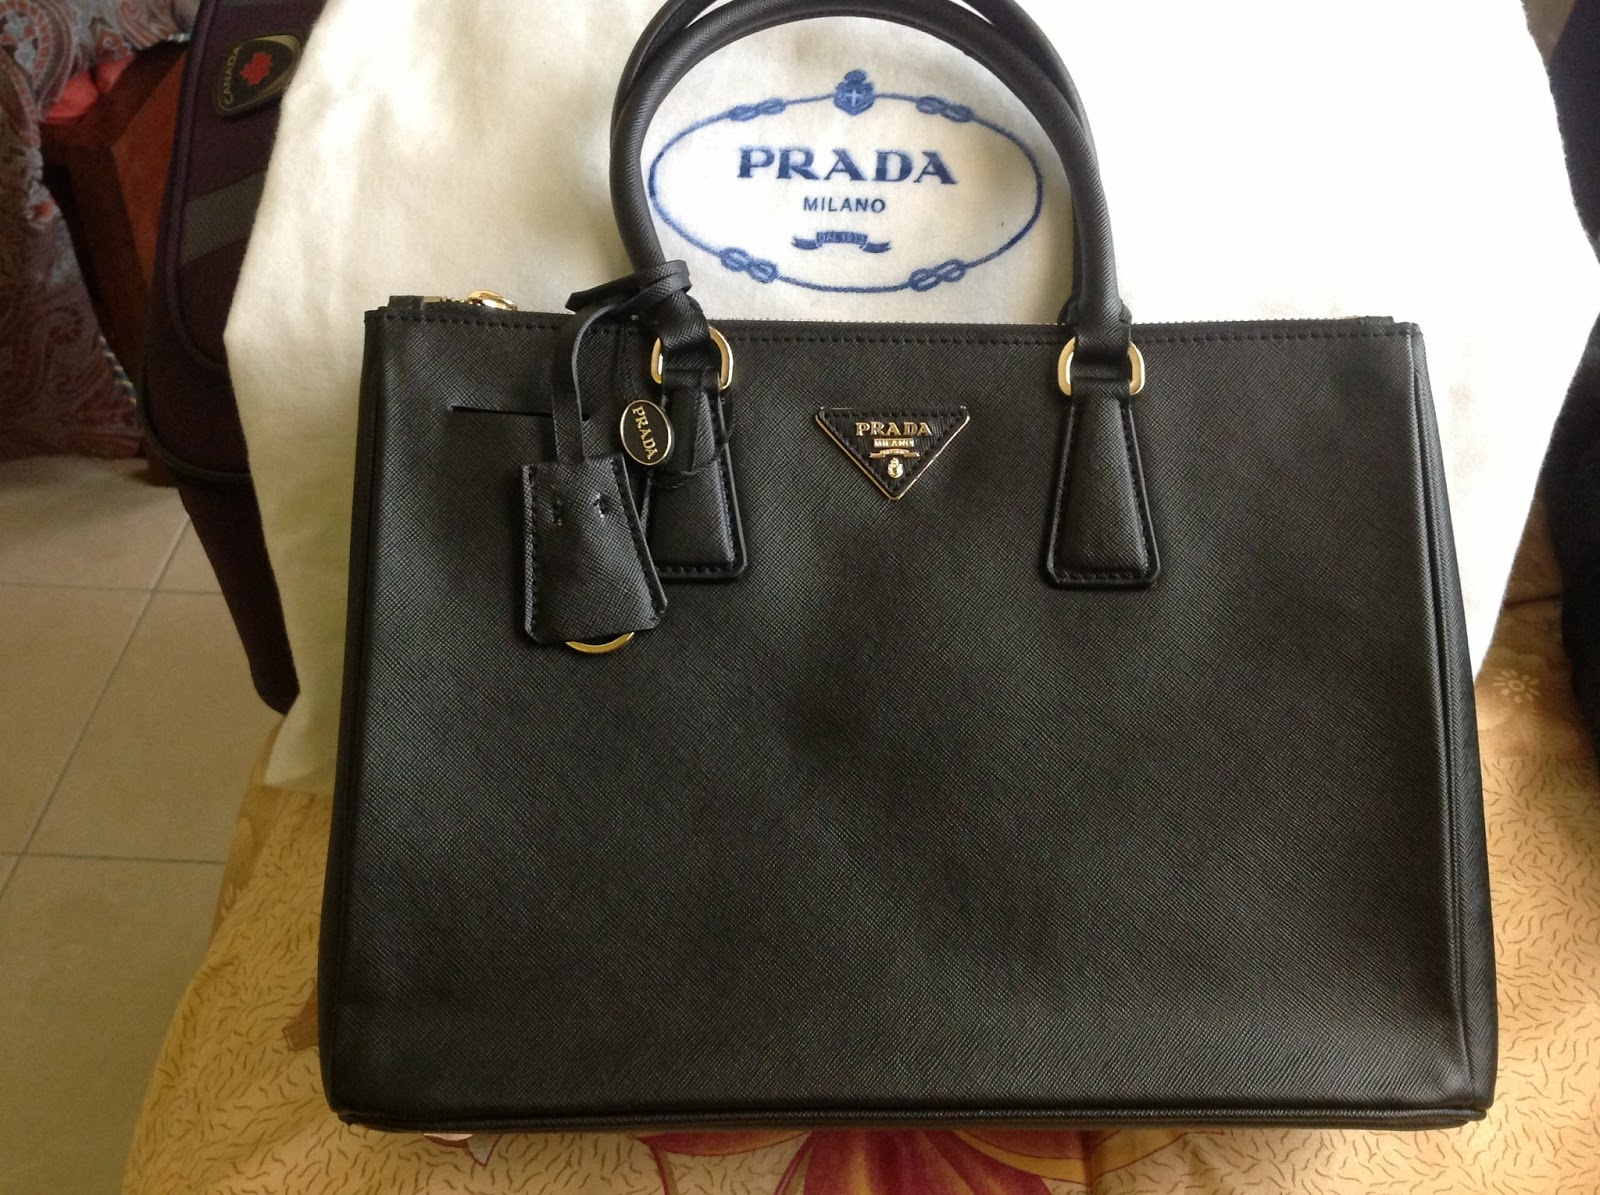 prada small handbags - Diary of a Trendaholic : My favorite purchase from Dubai: Prada